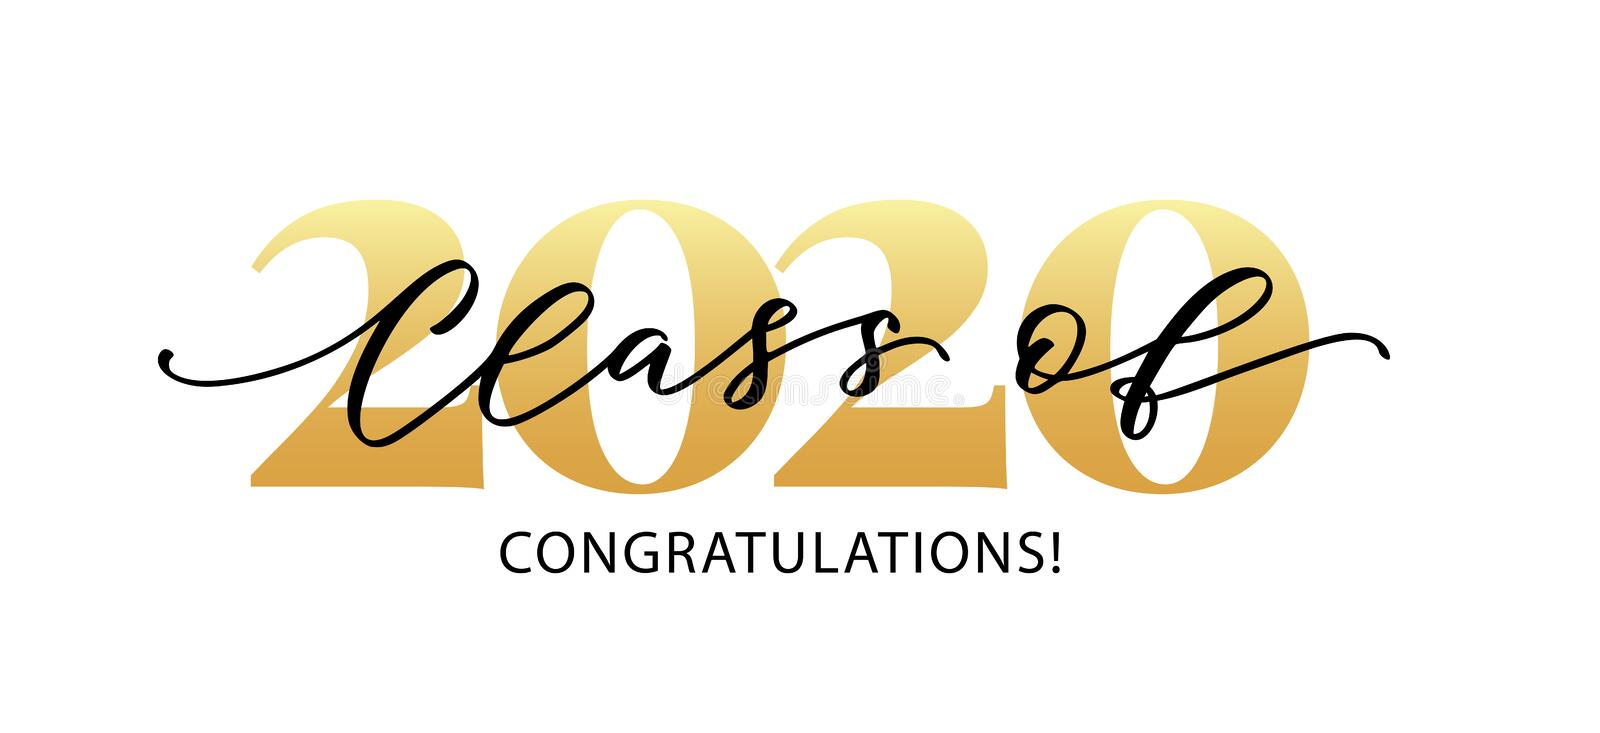 Class of 2020. Modern calligraphy. Hand drawn brush lettering logo. Graduate design yearbook. Vector illustration. Class of 2020. Congratulations. Lettering vector illustration